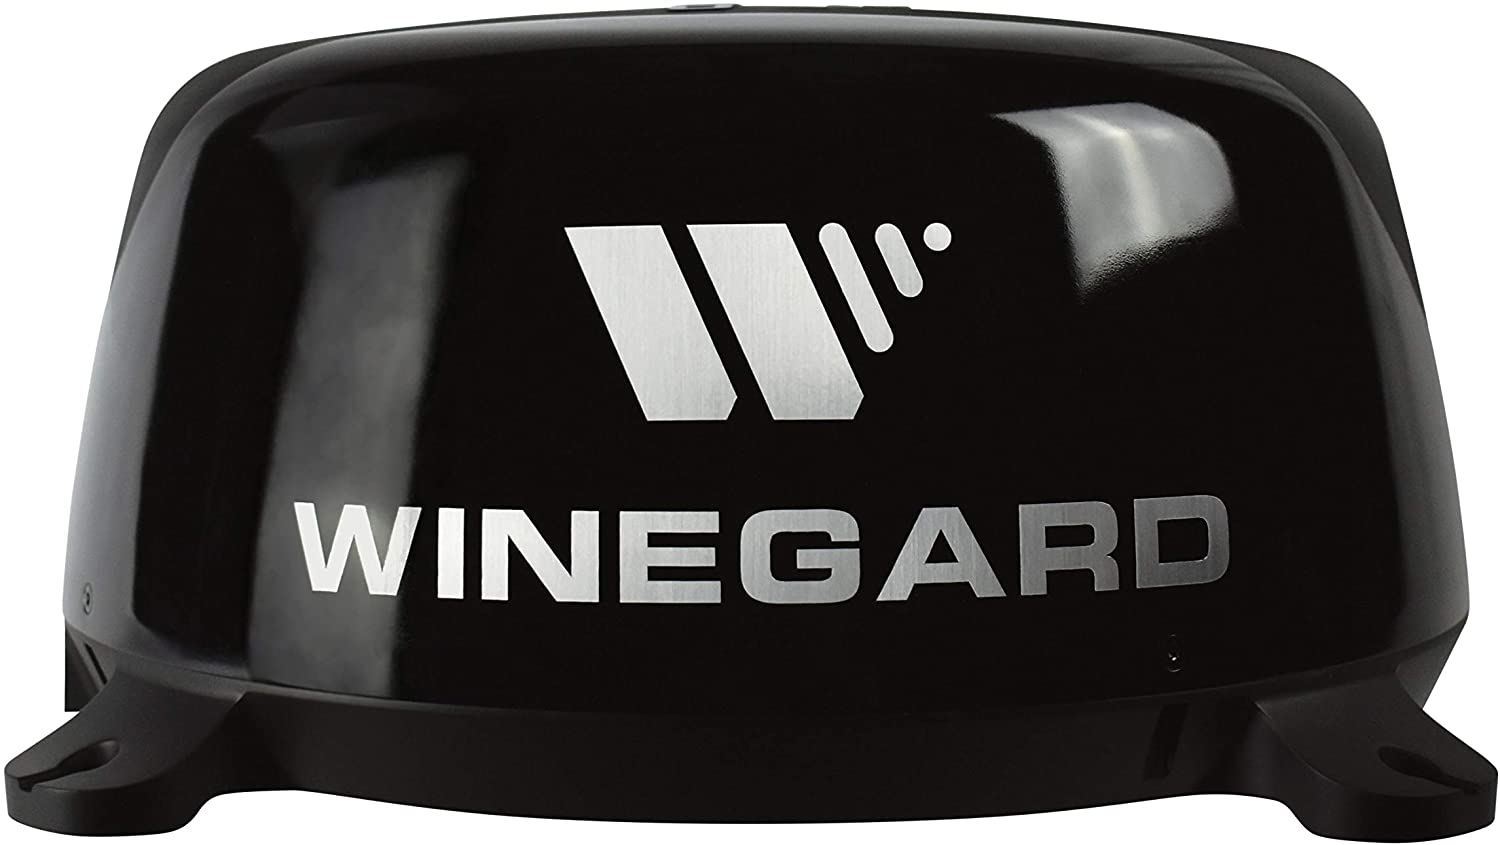 Winegard ConnecT 2.0 WF2 (WF2-335) Wi-Fi Extender for RVs